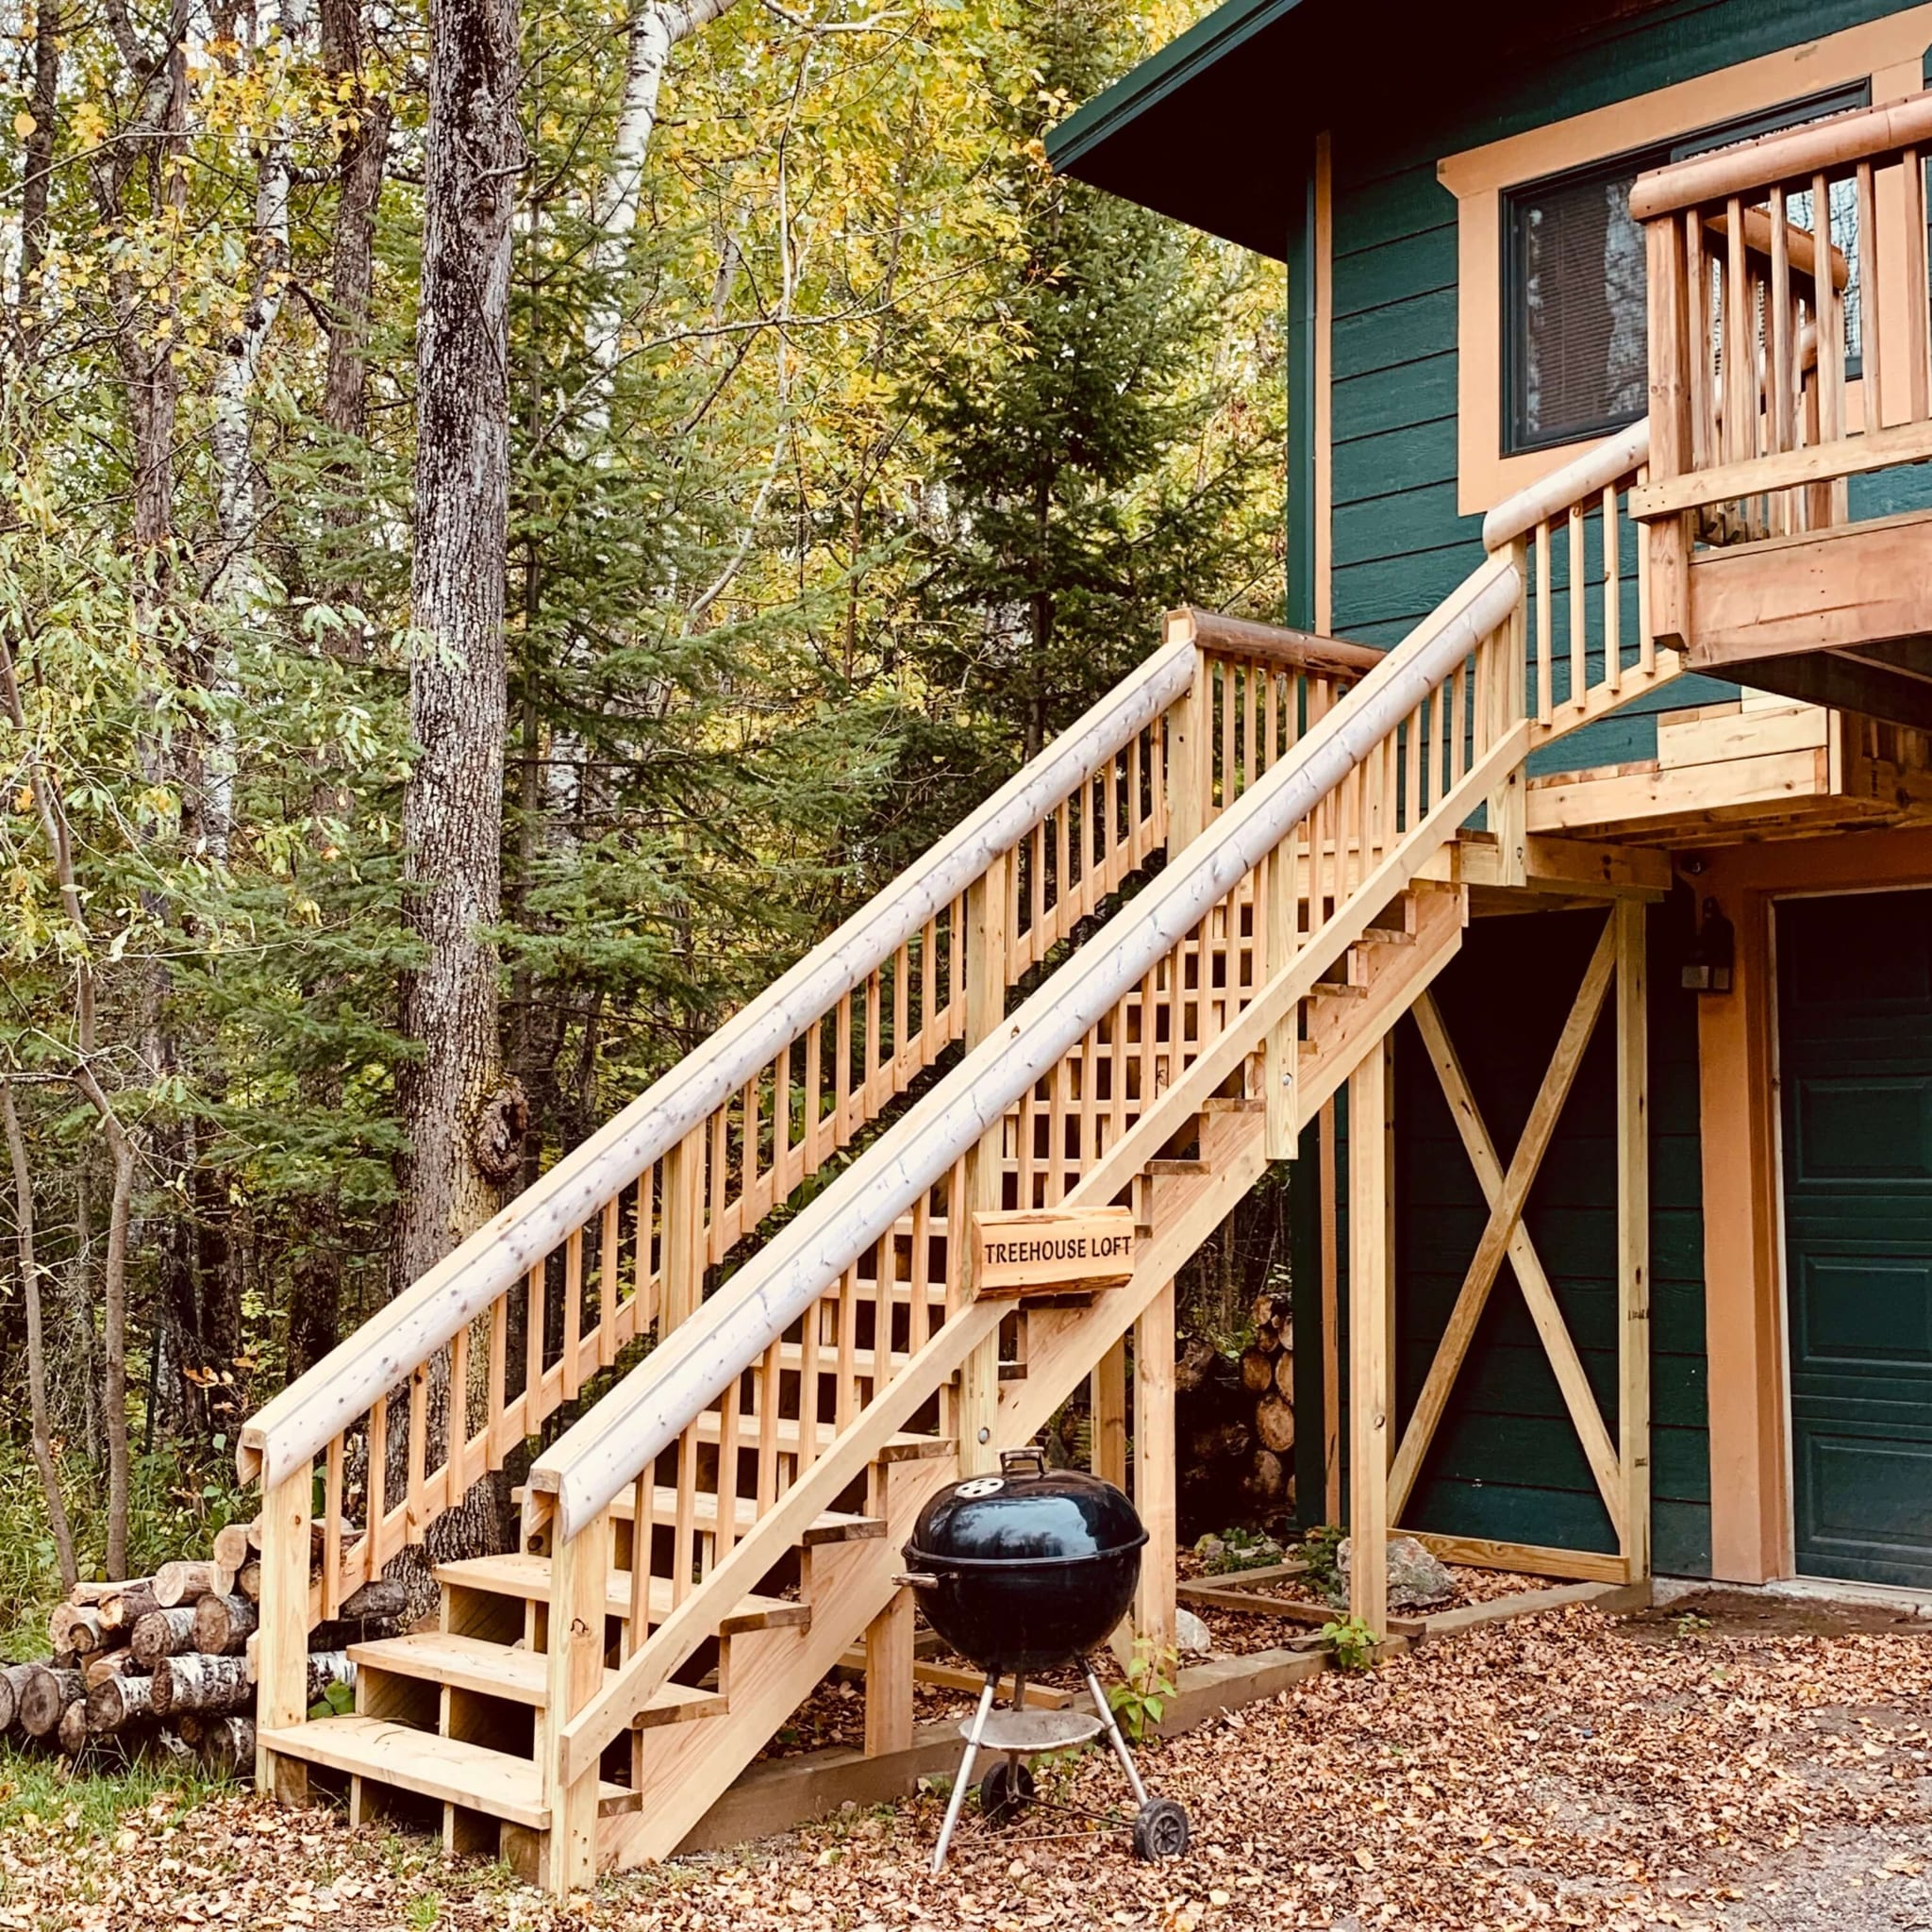 Tree house cabin entrance and stairs